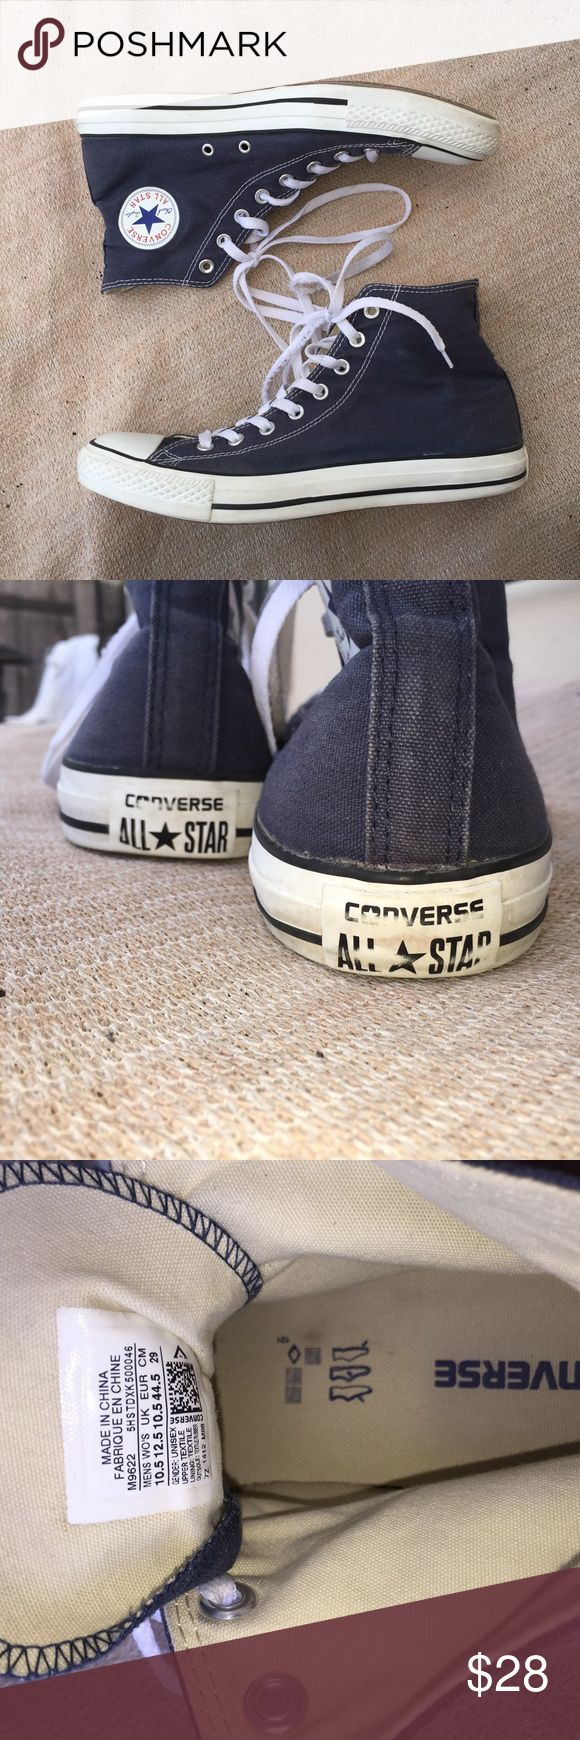 All Star Converse High Tops In great condition. One of the shoelaces is frayed (you could see in the last picture) but is a cheap fix. Practically new. Converse Shoes Sneakers